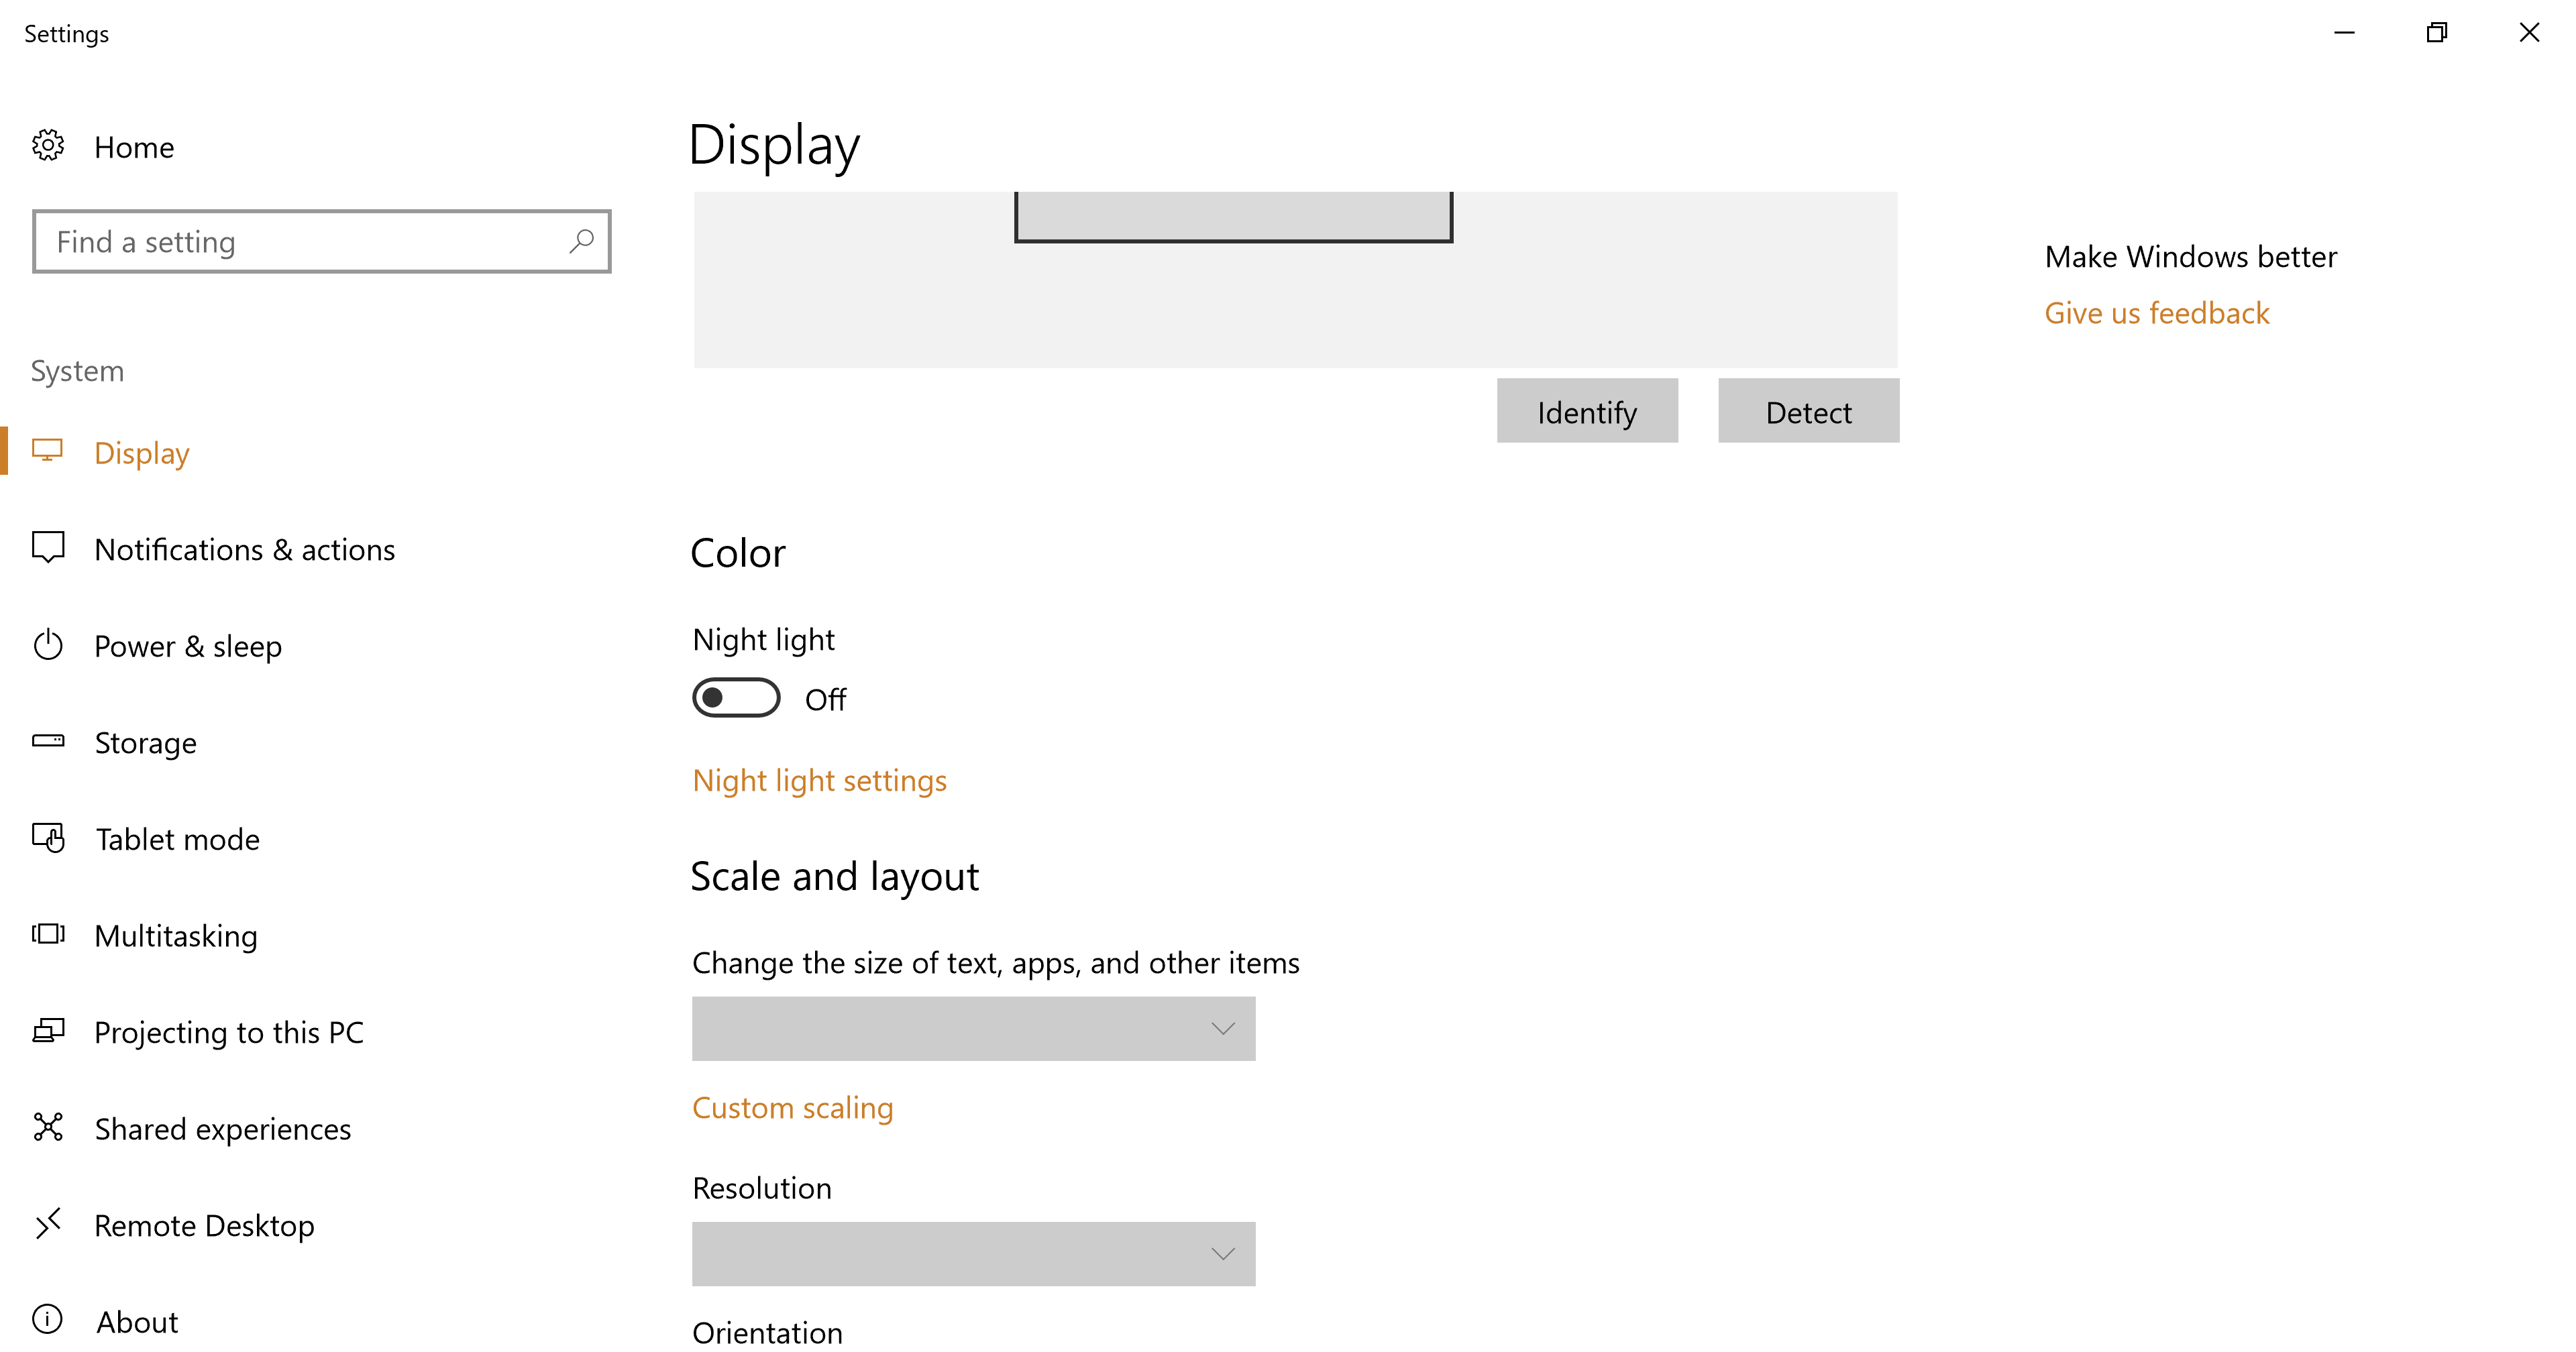 HDR and Advance Color option greyed out in Windows 10 on TCL